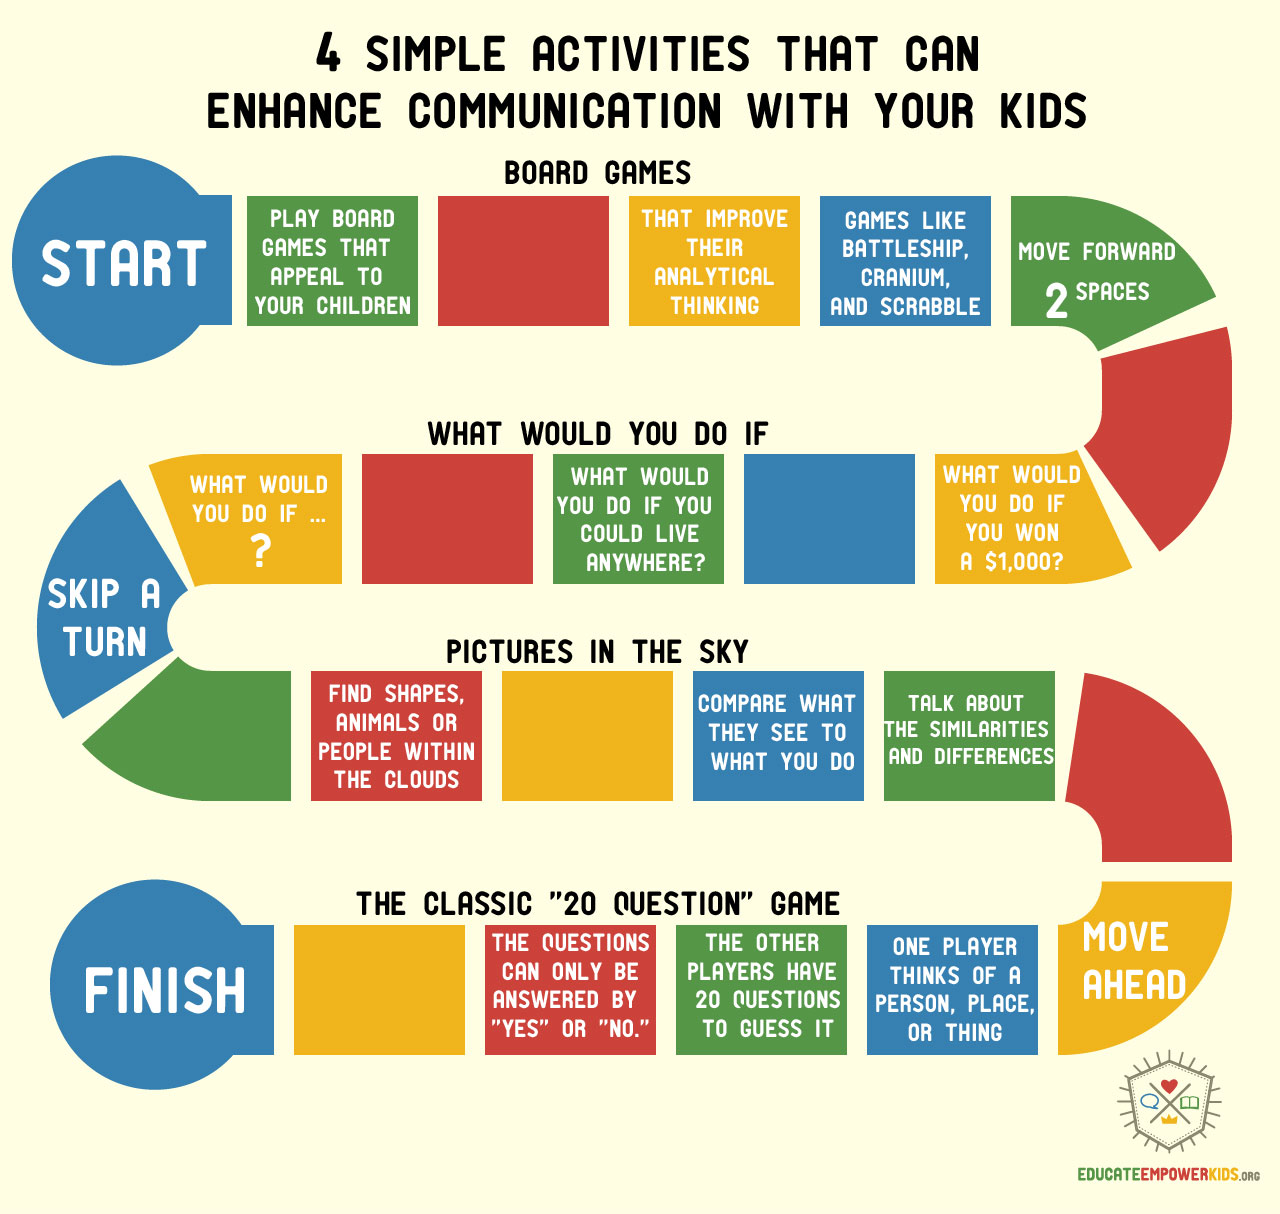 4 Simple Activities That Can Enhance Communication With